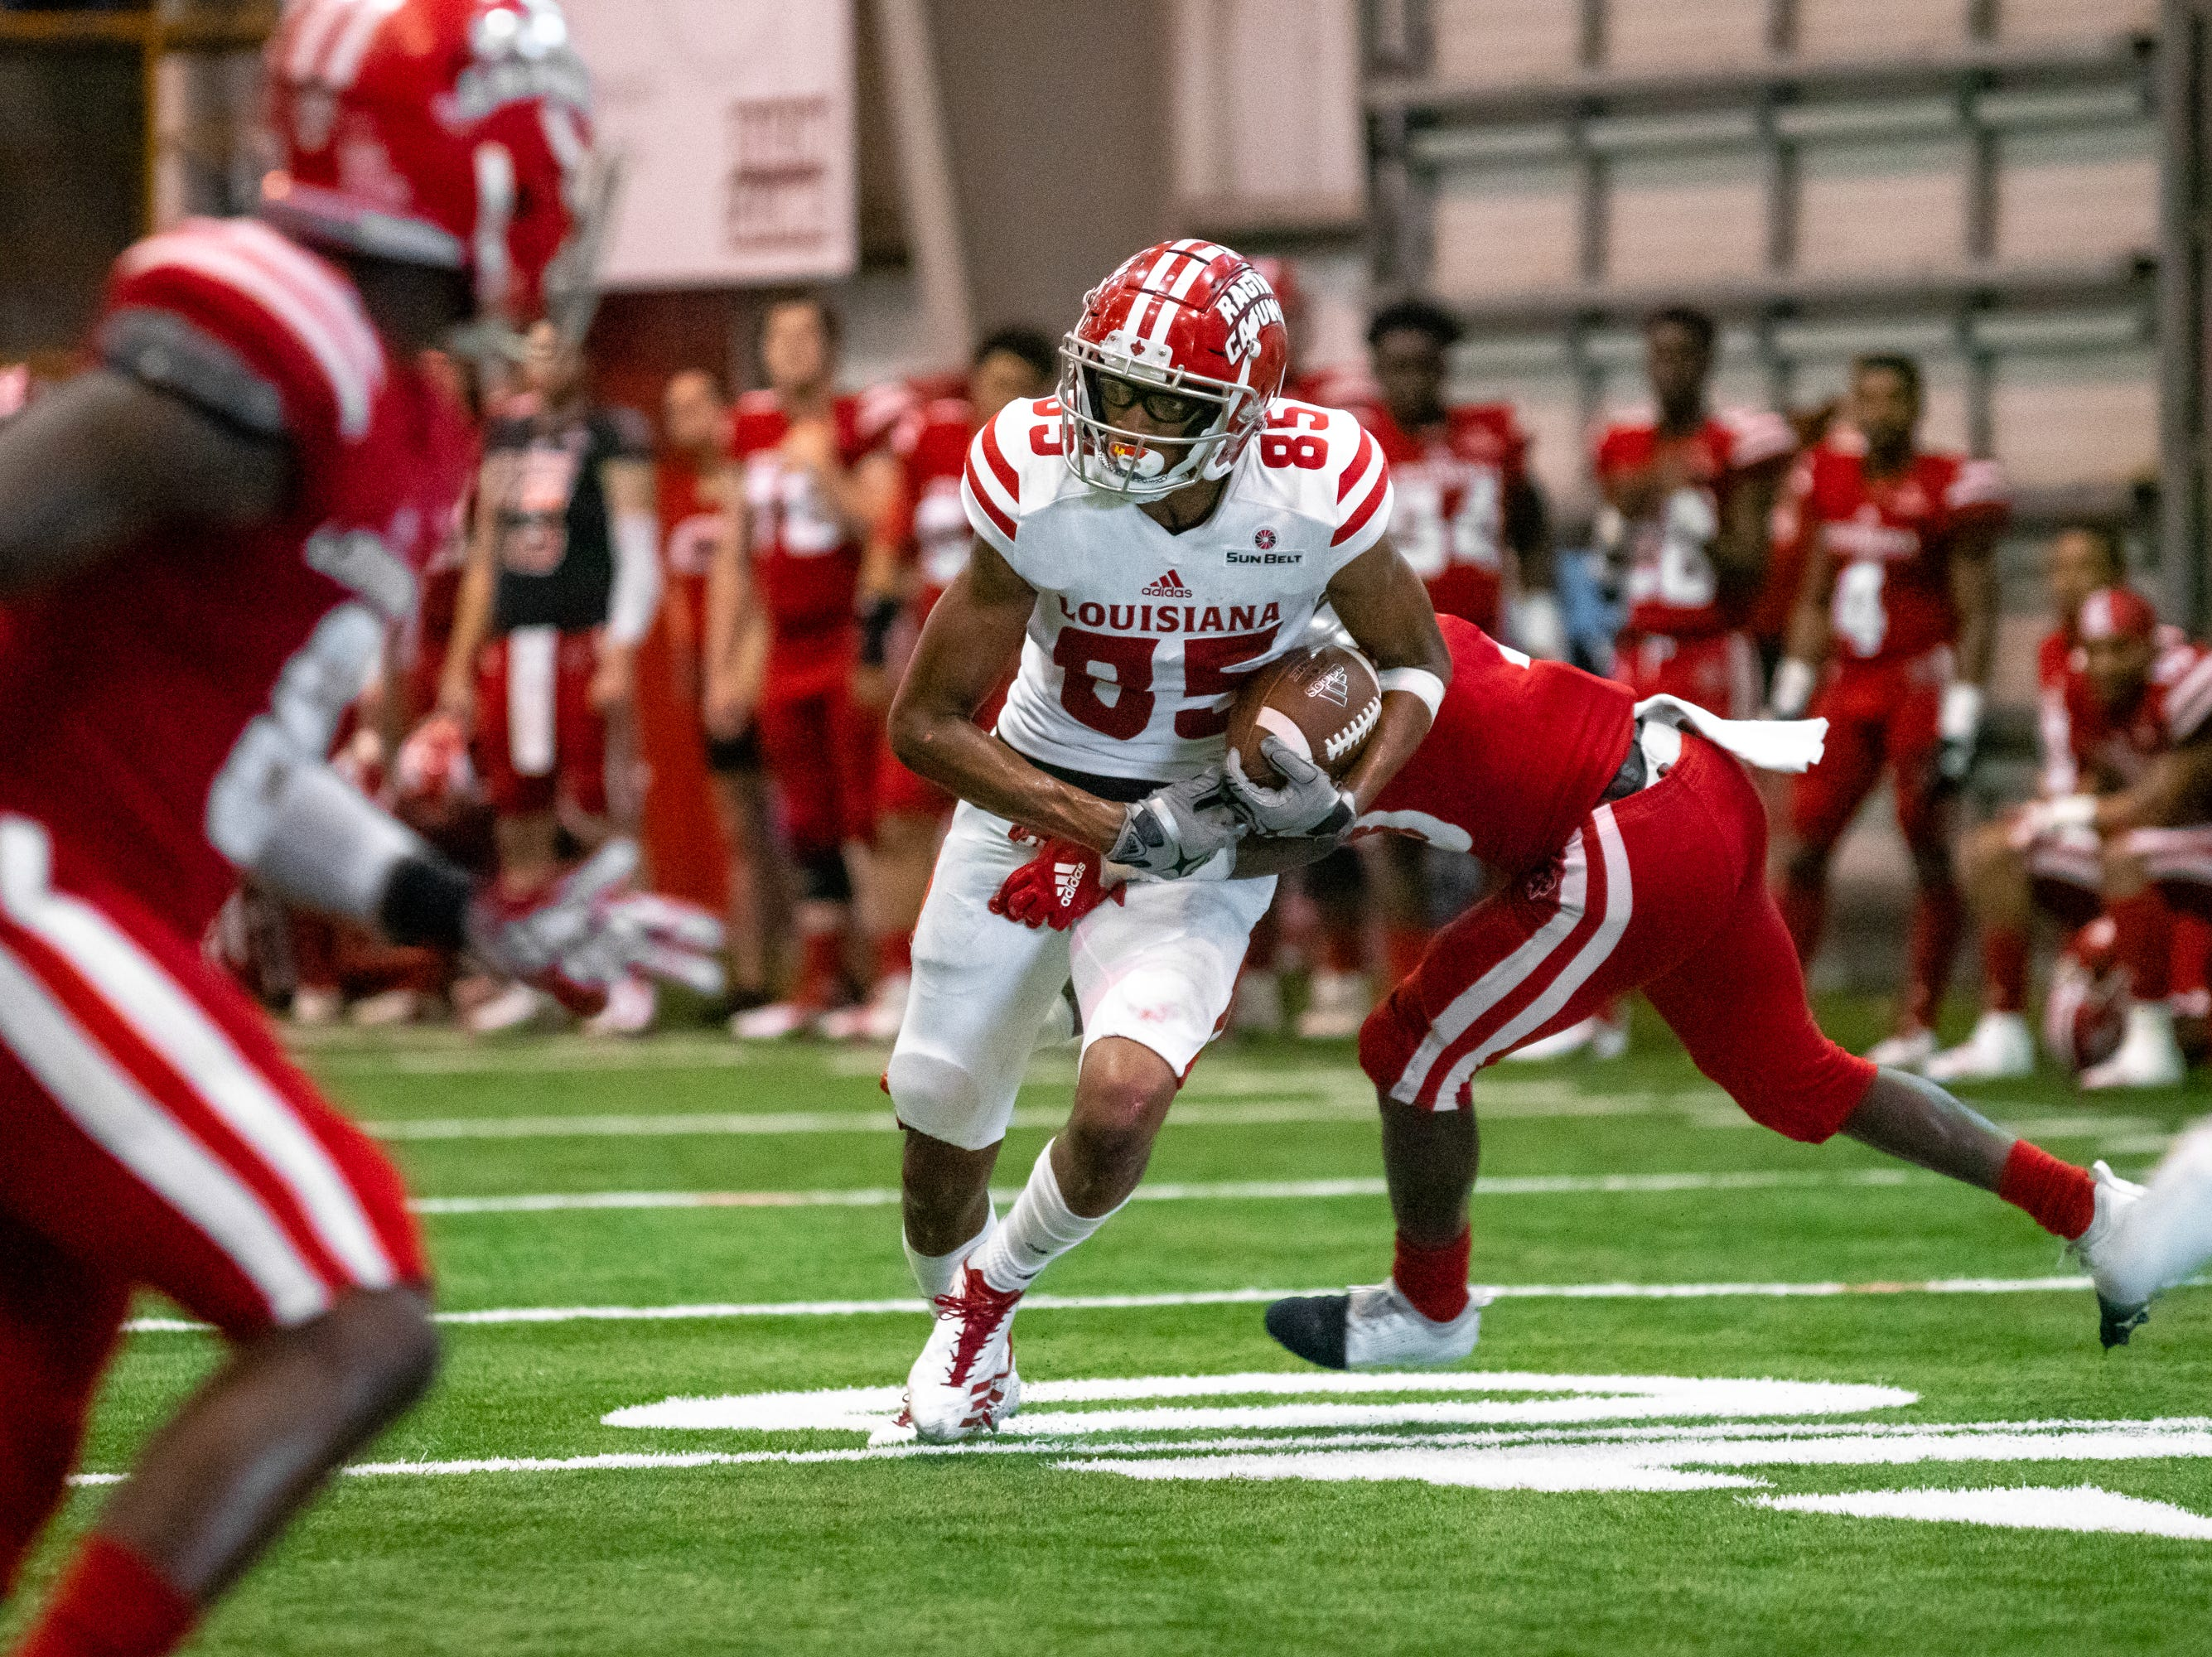 UL's Calif Gossett runs the ball down the field as the Ragin' Cajuns football team plays their annual Spring football game against one another in the Leon Moncla trainig facility on April 13, 2019.